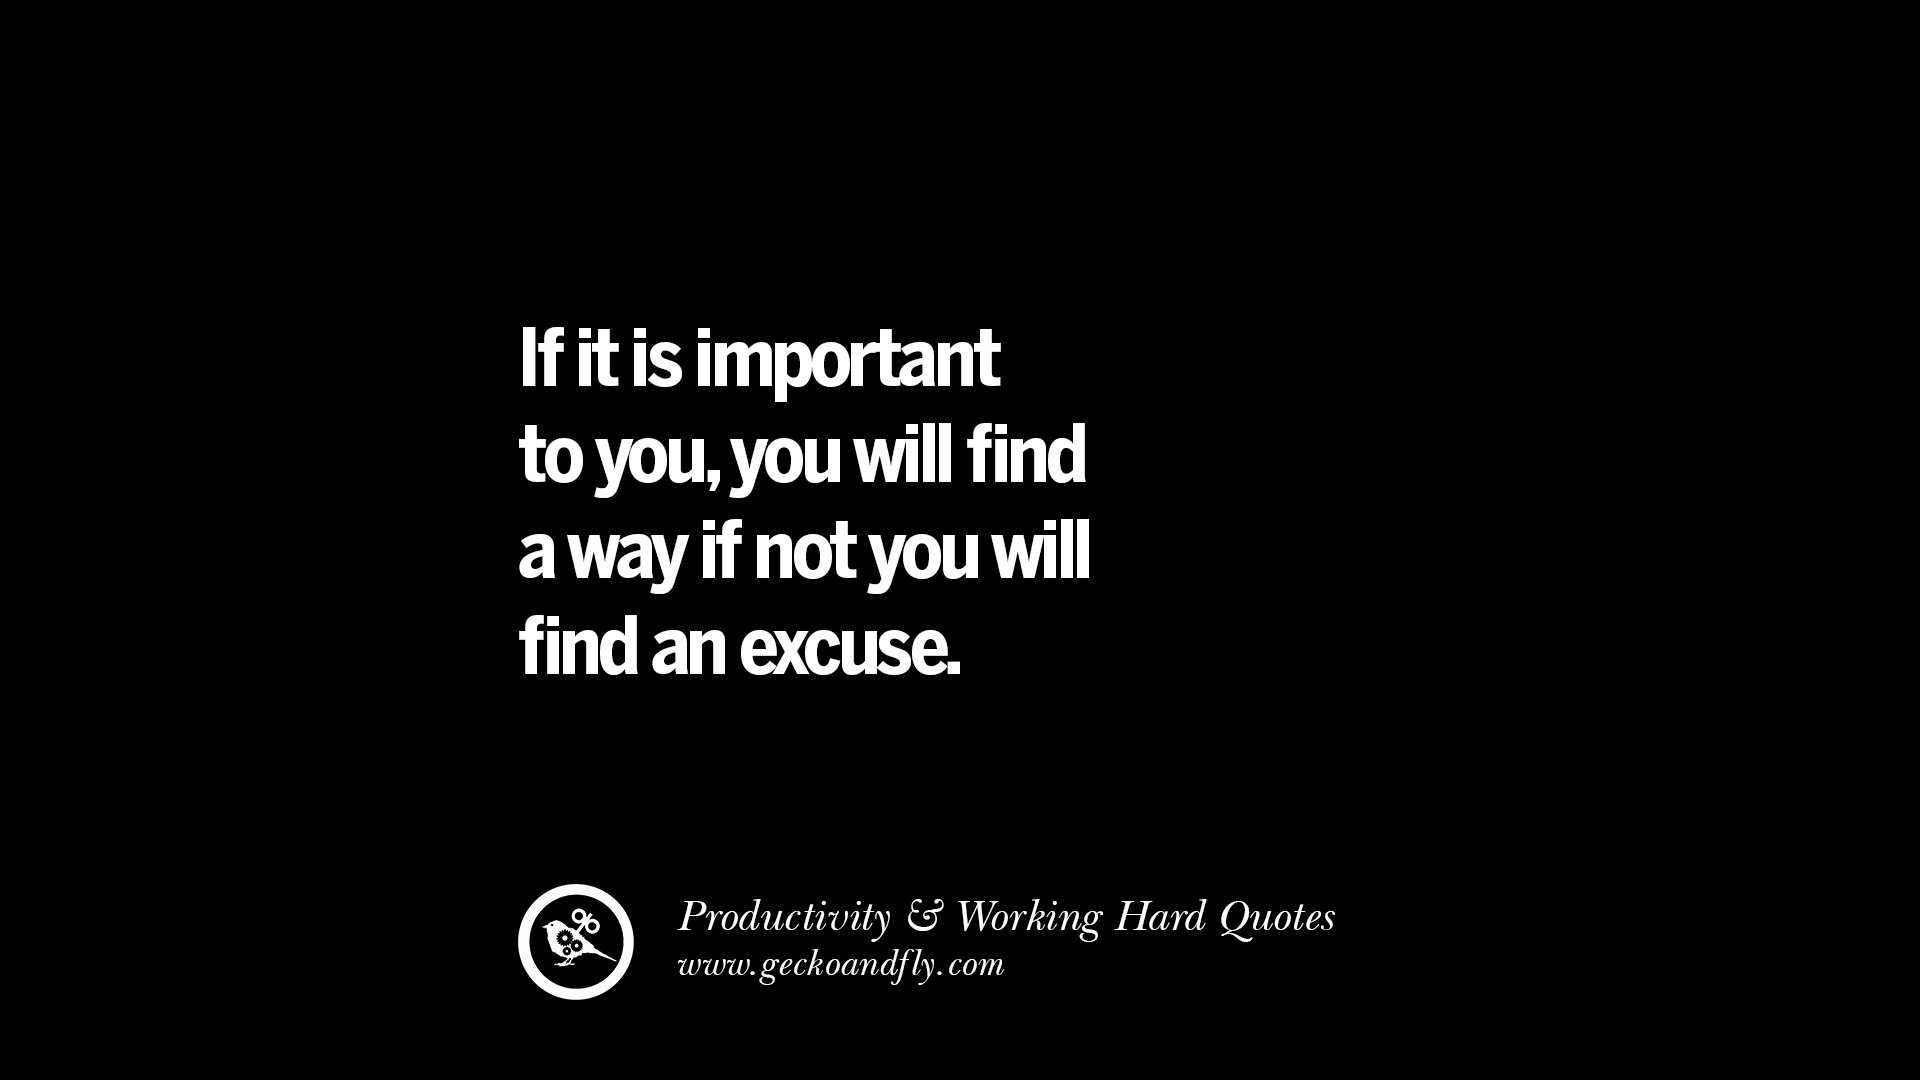 uplifting quotes on increasing productivity and working hard if it is important to you you will a way if not you will an excuse work harder